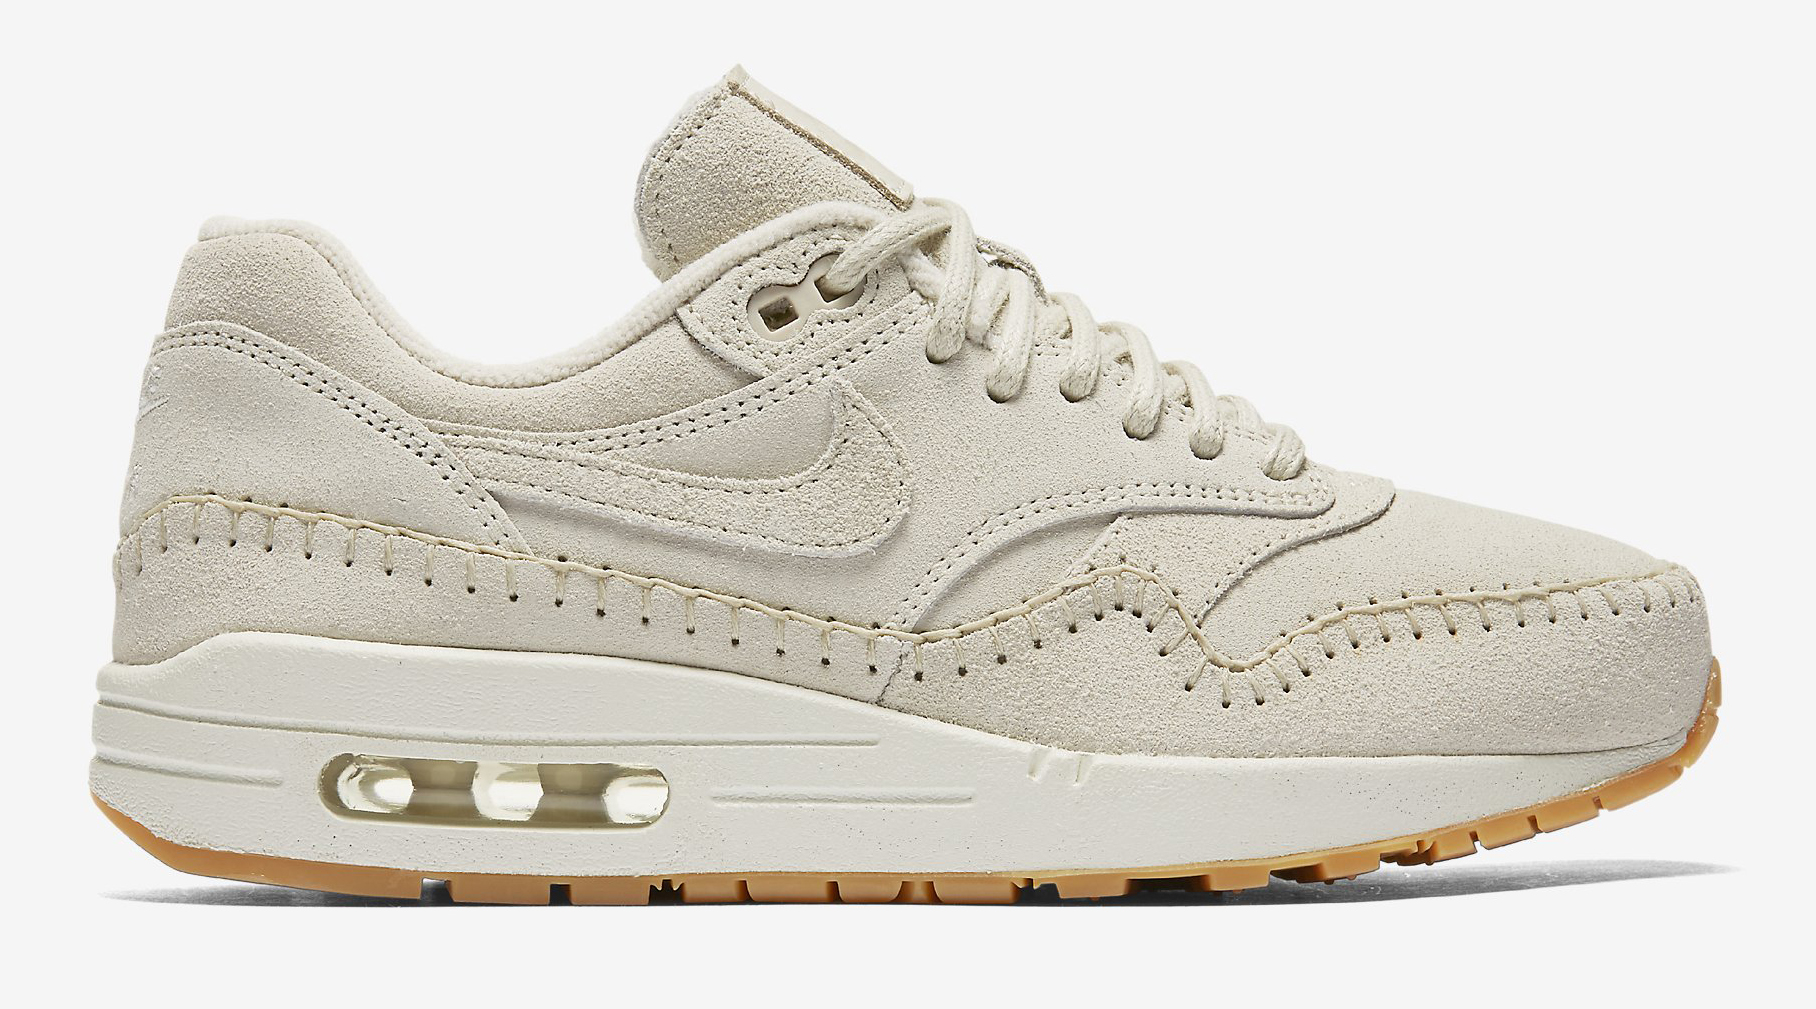 Nike Air Max 1 Sherpa Cream 454746-204 Profile